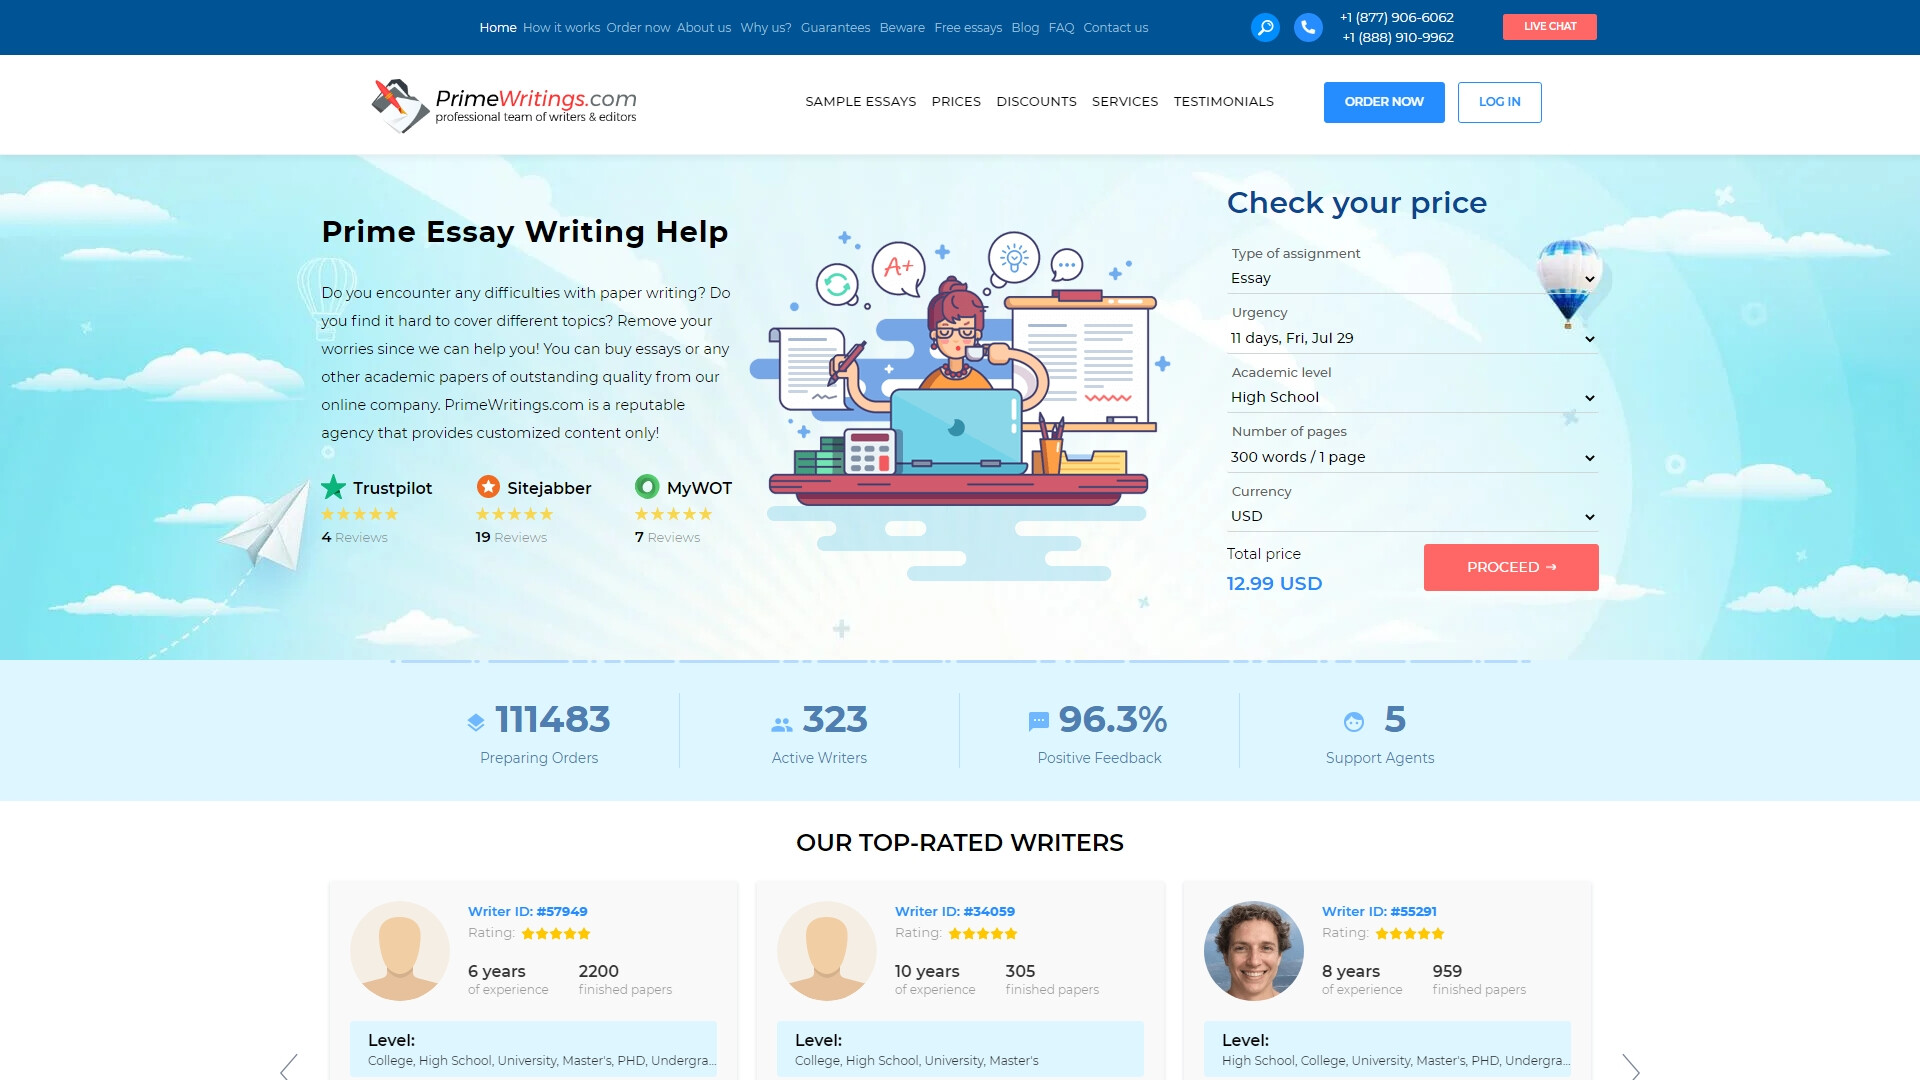 PrimeWritings.com review